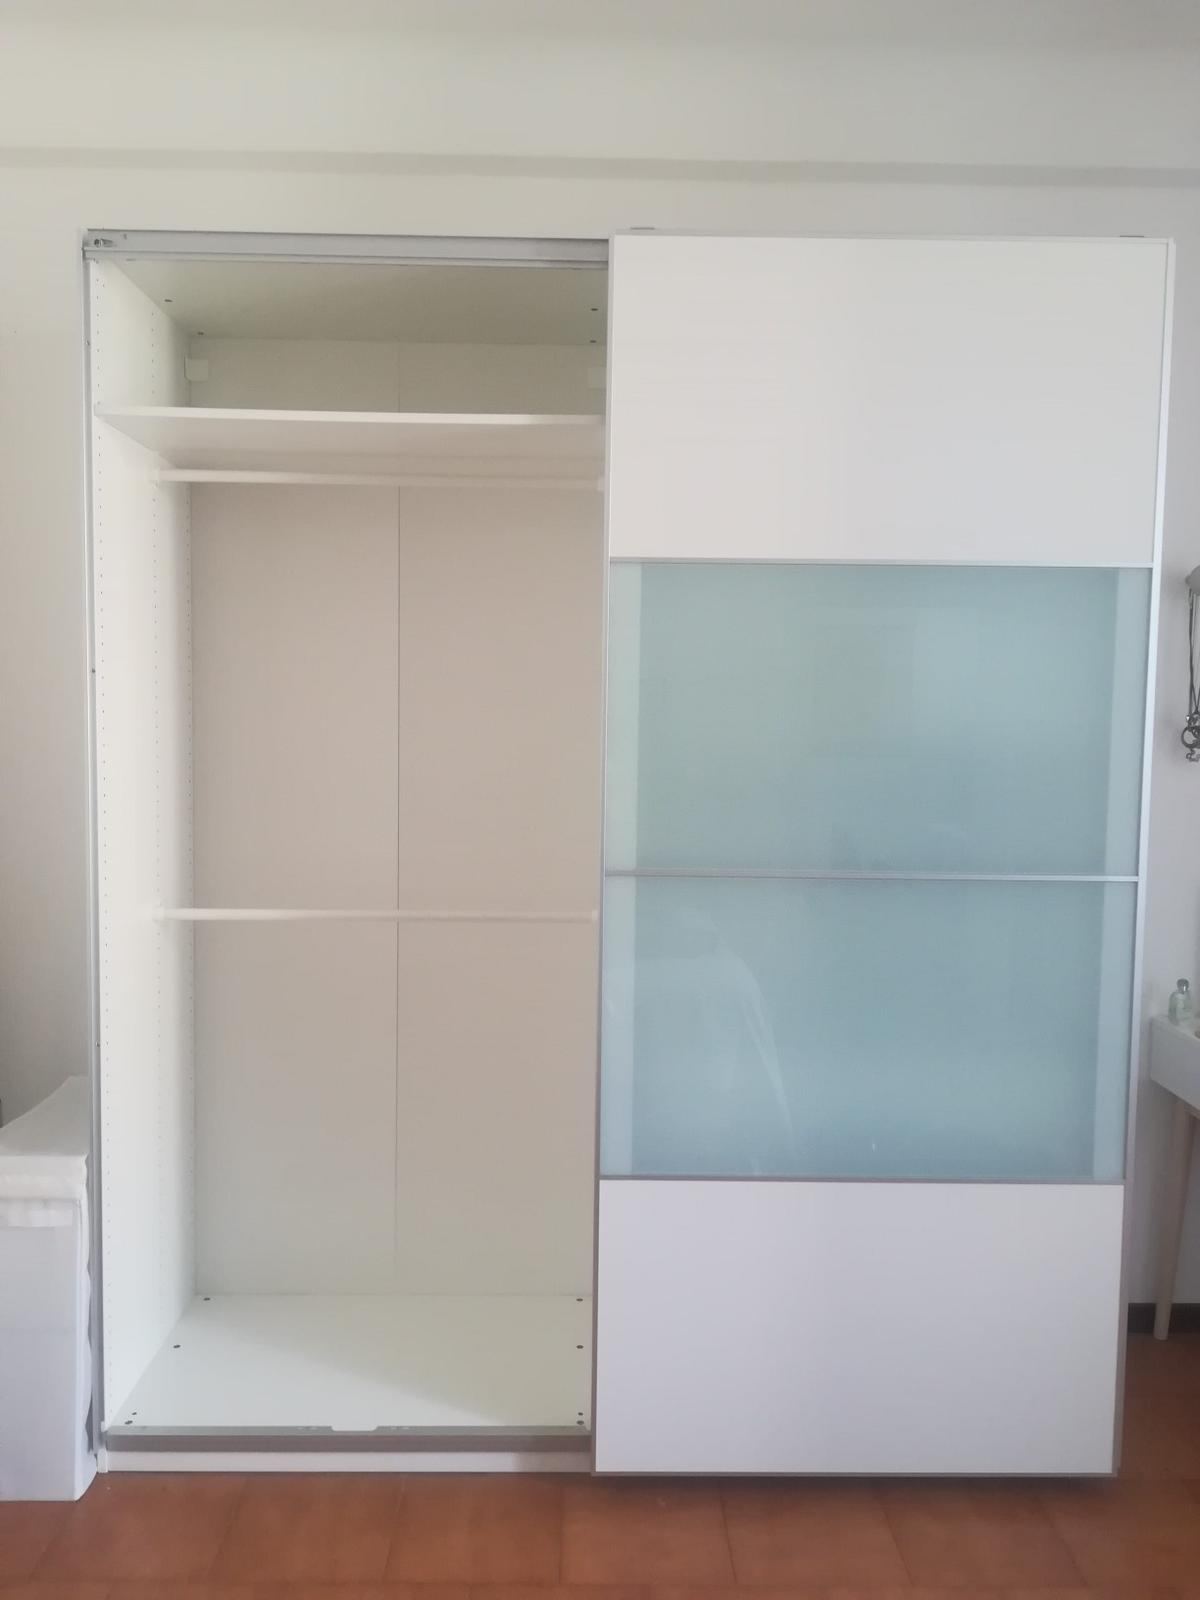 Armadio ikea in 20121 Milano for €150.00 for sale | Shpock